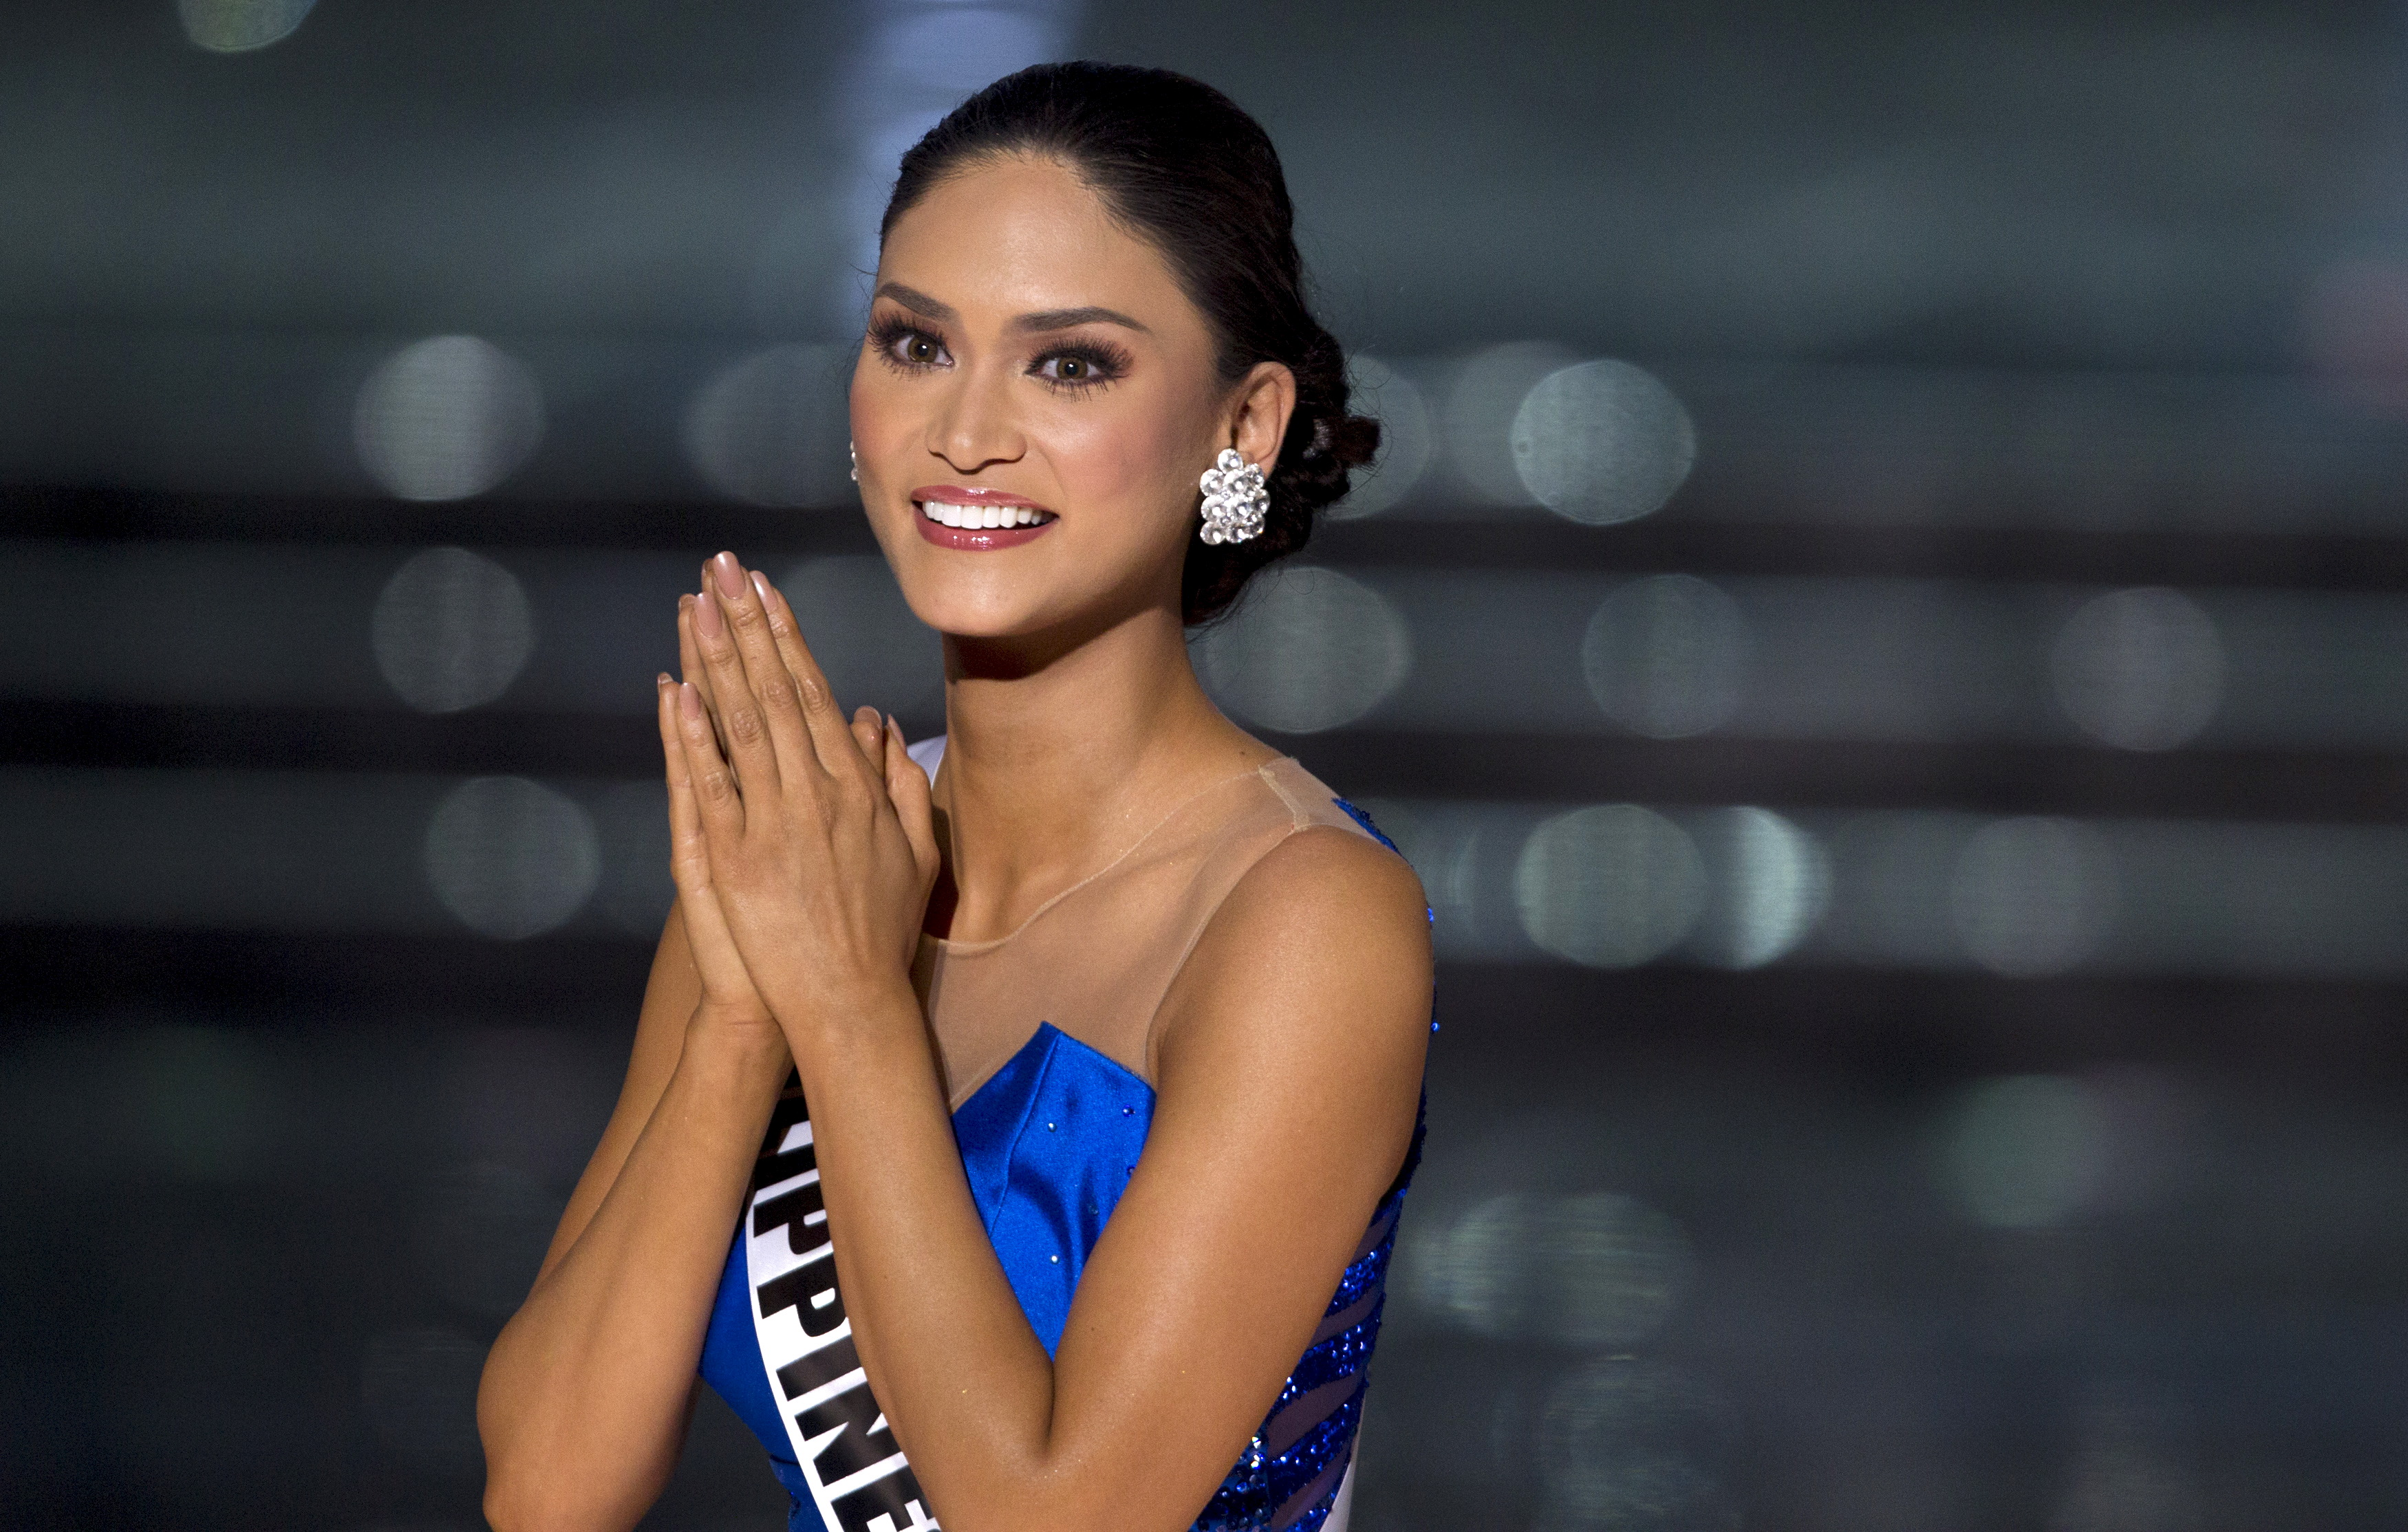 Miss Philippines Pia Alonzo Wurtzbach competes in the 2015 Miss Universe Pageant in Las Vegas, Nevada December 20, 2015. Wurtzbach was later crowned Miss Universe. REUTERS/Steve Marcus    ATTENTION EDITORS - FOR EDITORIAL USE ONLY. NOT FOR SALE FOR MARKETING OR ADVERTISING CAMPAIGNS - RTX1ZK2D